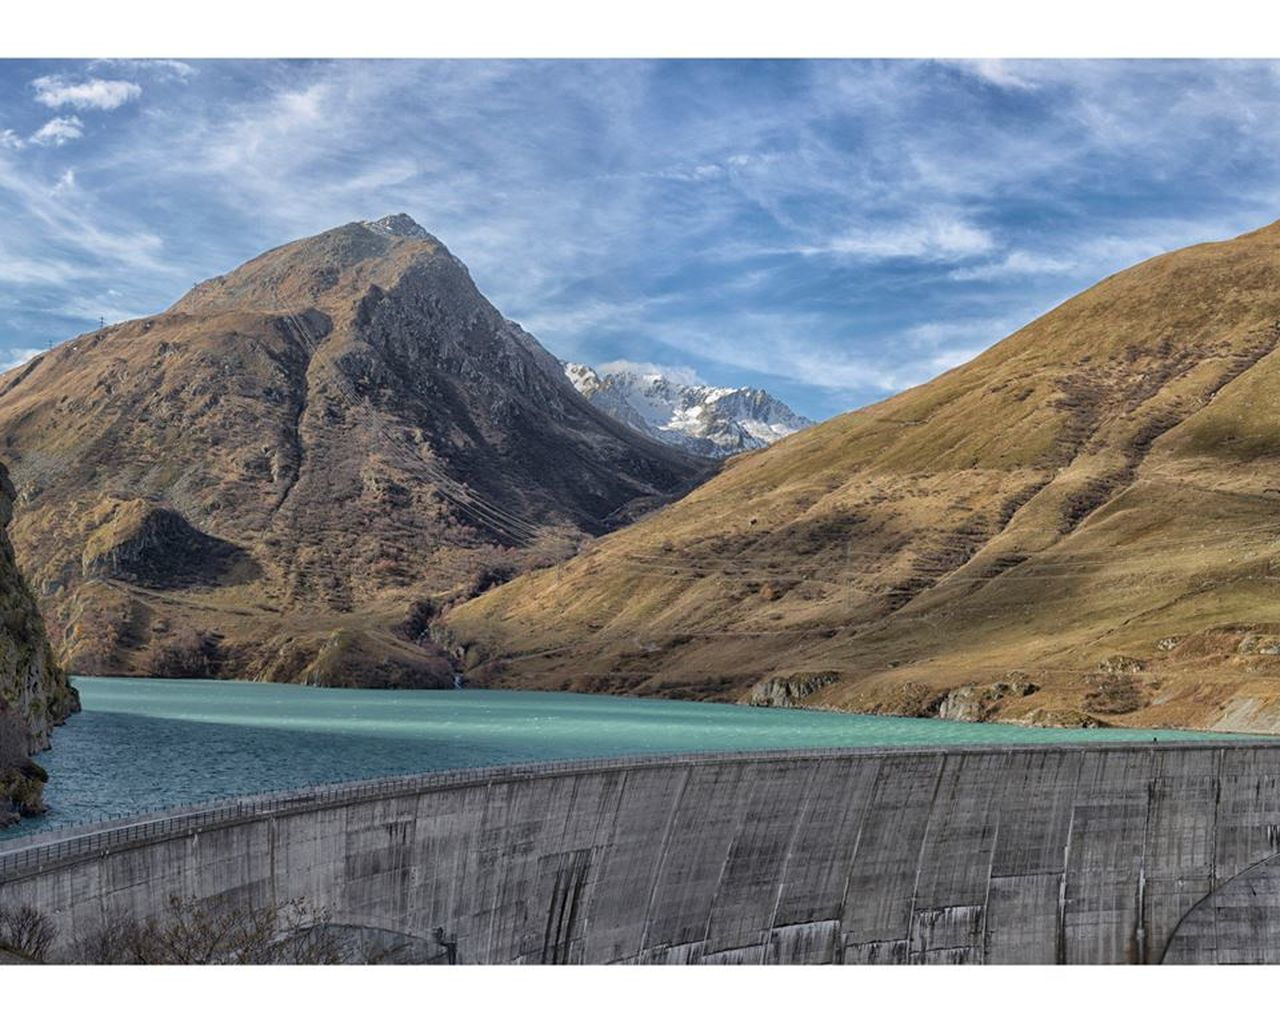 mountain, mountain range, nature, lake, scenics, dam, water, beauty in nature, no people, day, hydroelectric power, landscape, outdoors, sky